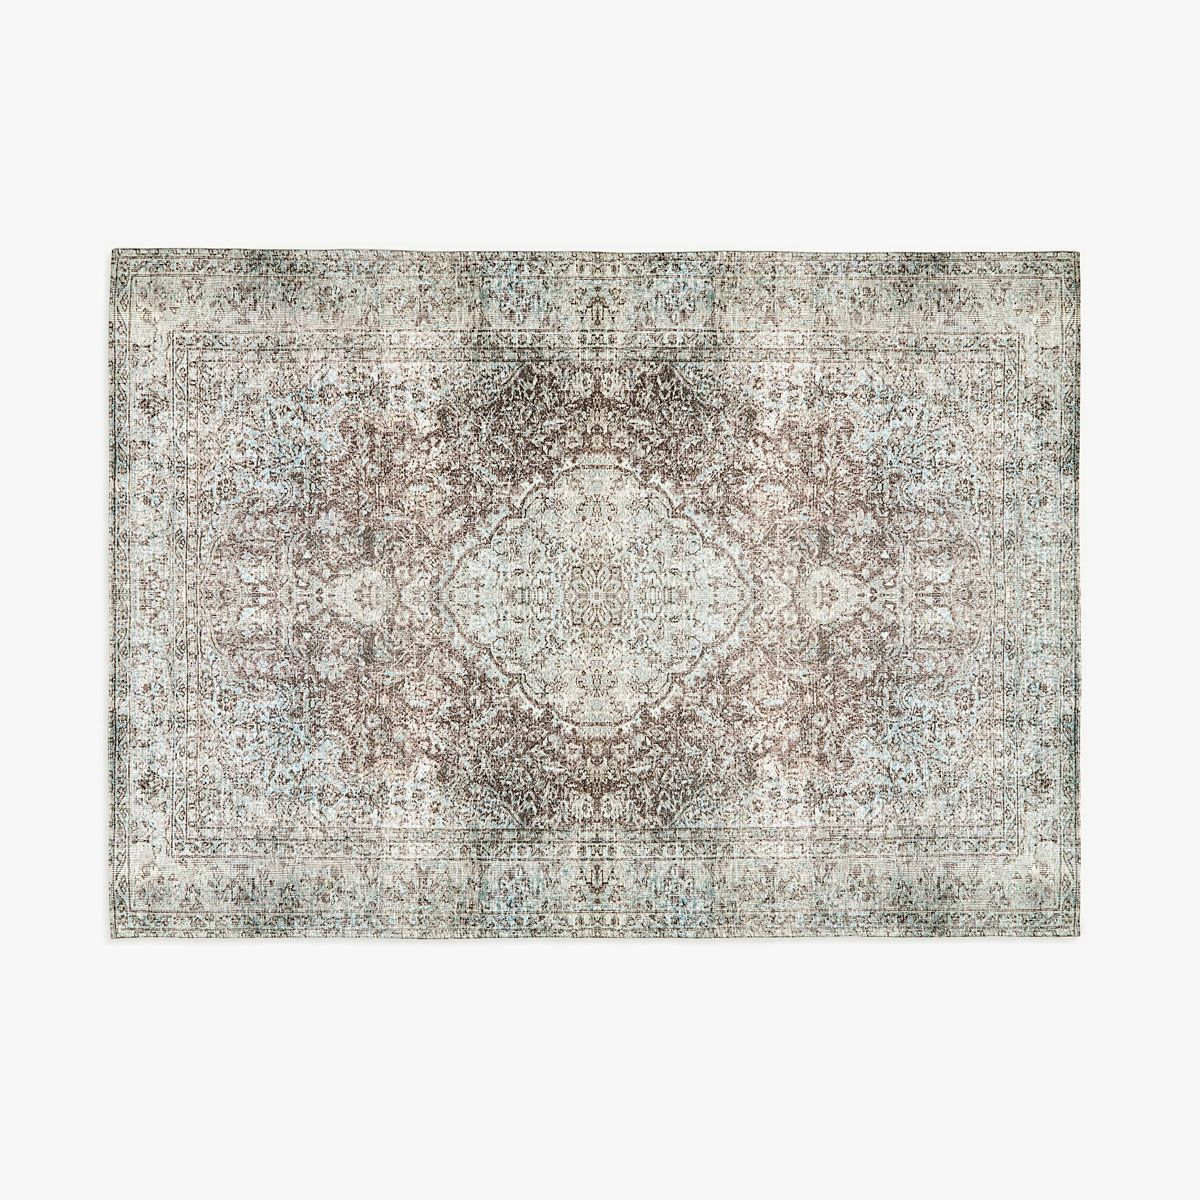 Image 1 Of The Product Ombre Rug Zara Home Zara Home Rugs